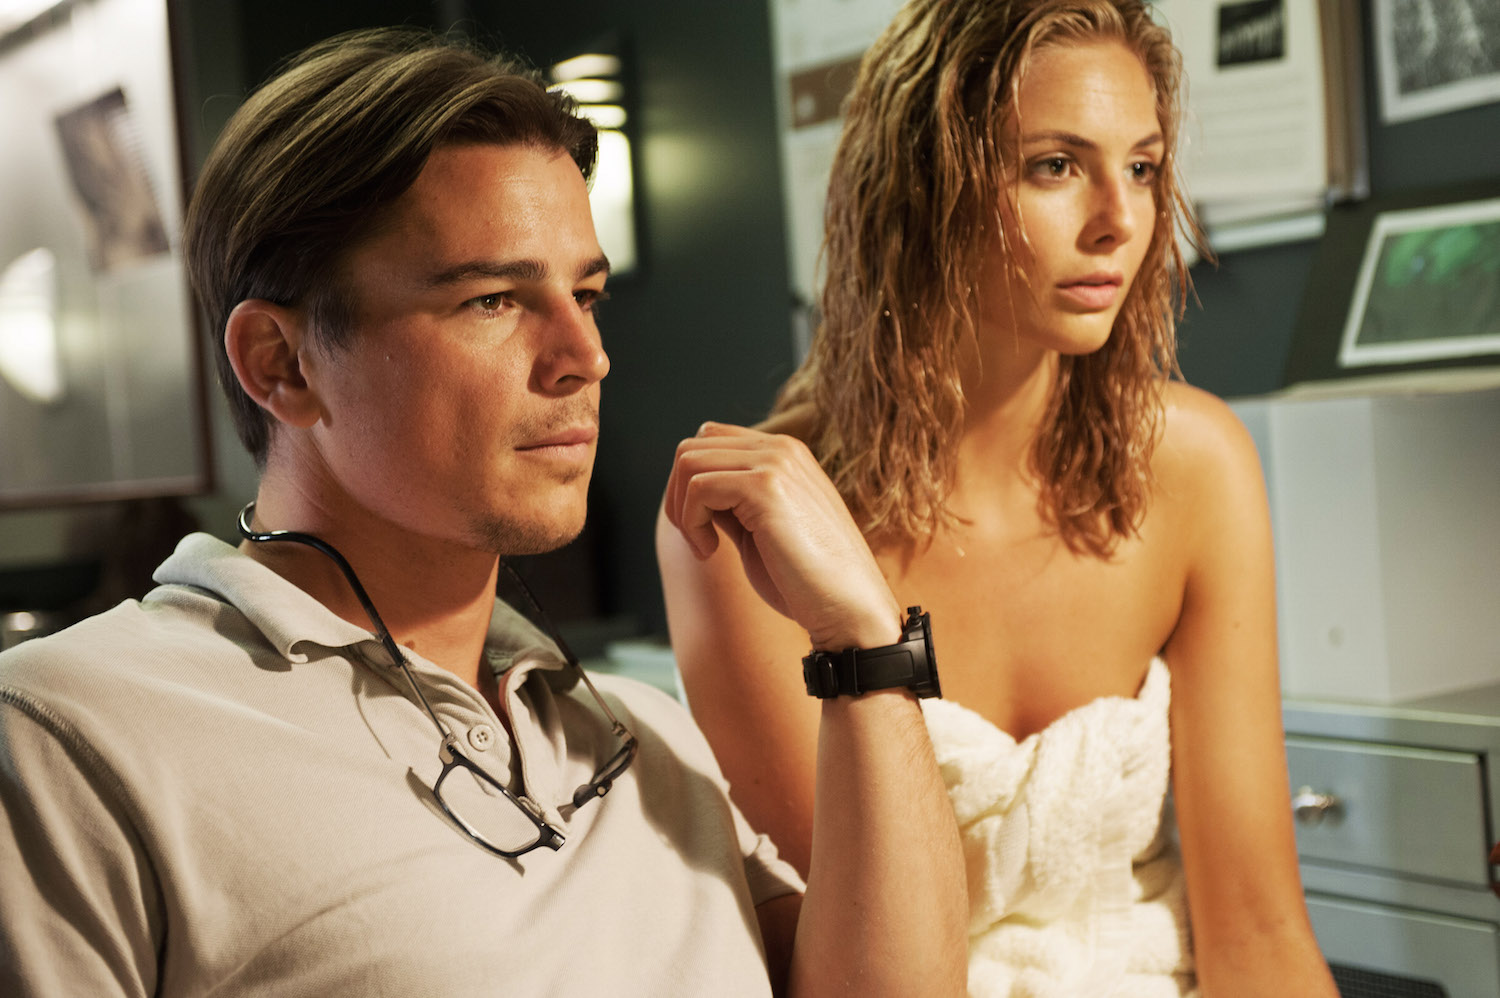 THE LOVERS, from left, Josh Hartnett, Tamsin Egerton, 2015. ph: Liam Daniel/©IFC Films/courtesy